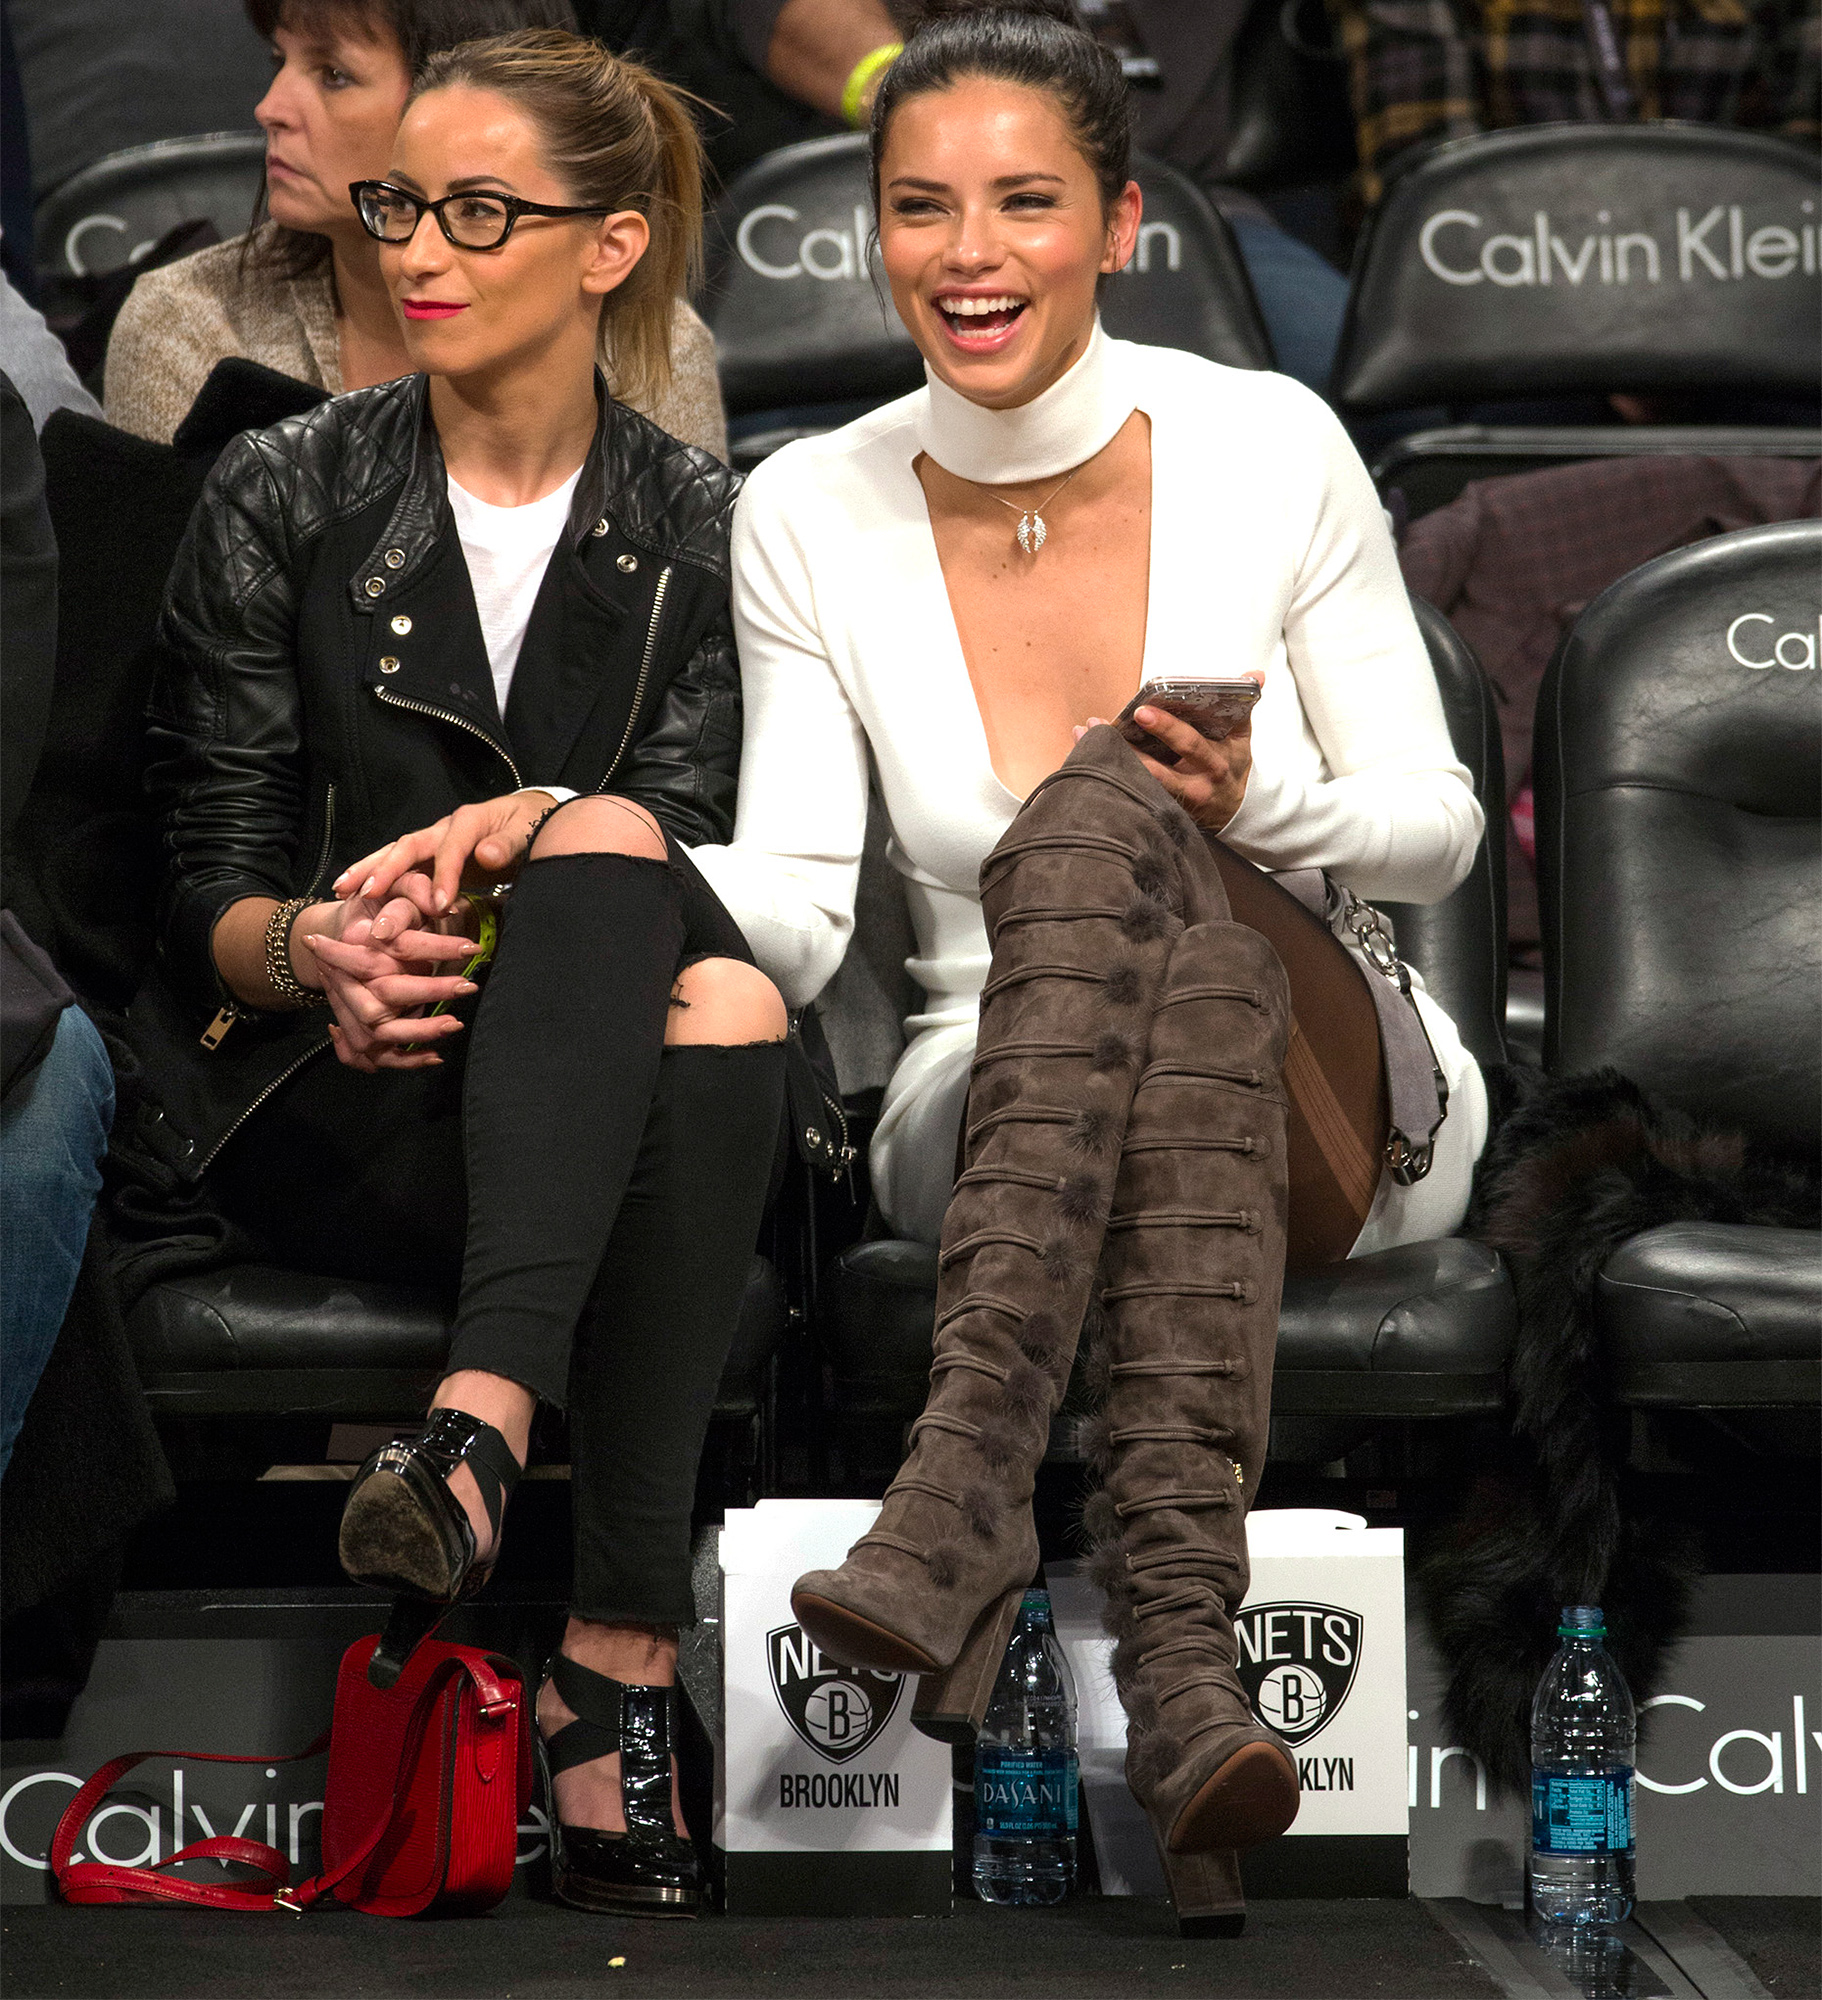 Victoria's Secret model Adriana Lima sits court side as the Brooklyn Nets play the Los Angeles Lakers at Barclays Center in New York